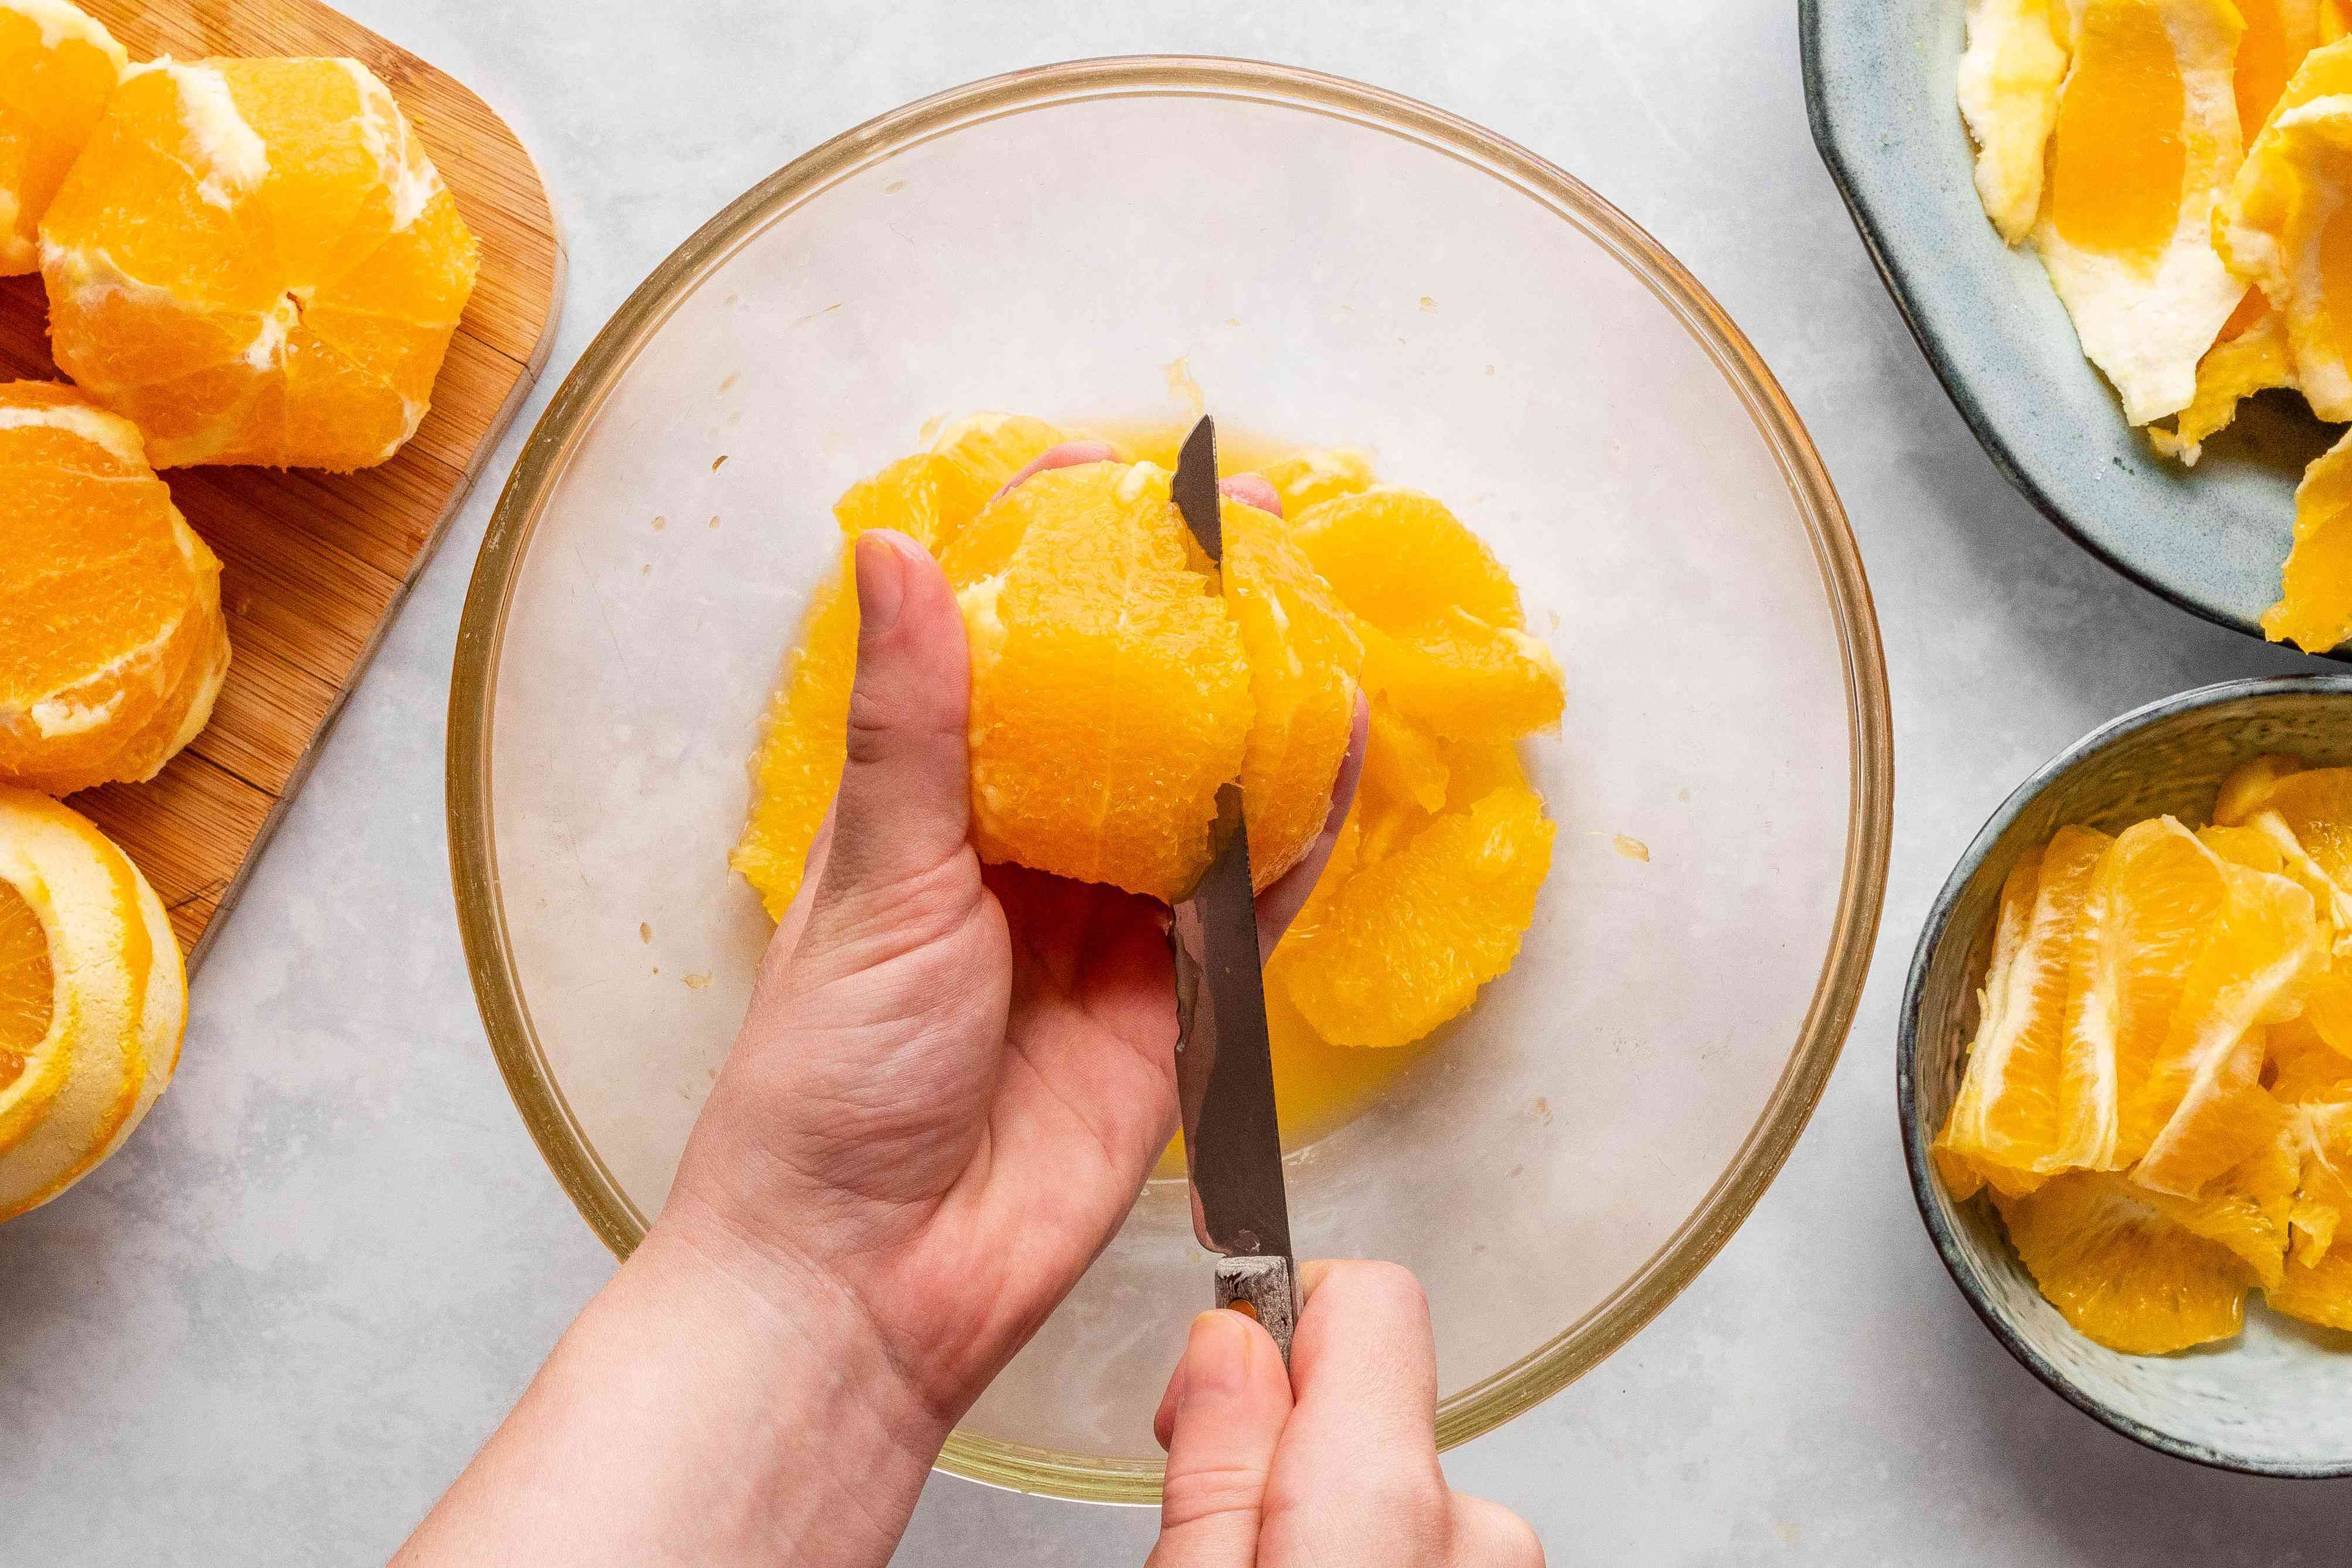 cutting out orange segments with a knife, into a glass bowl